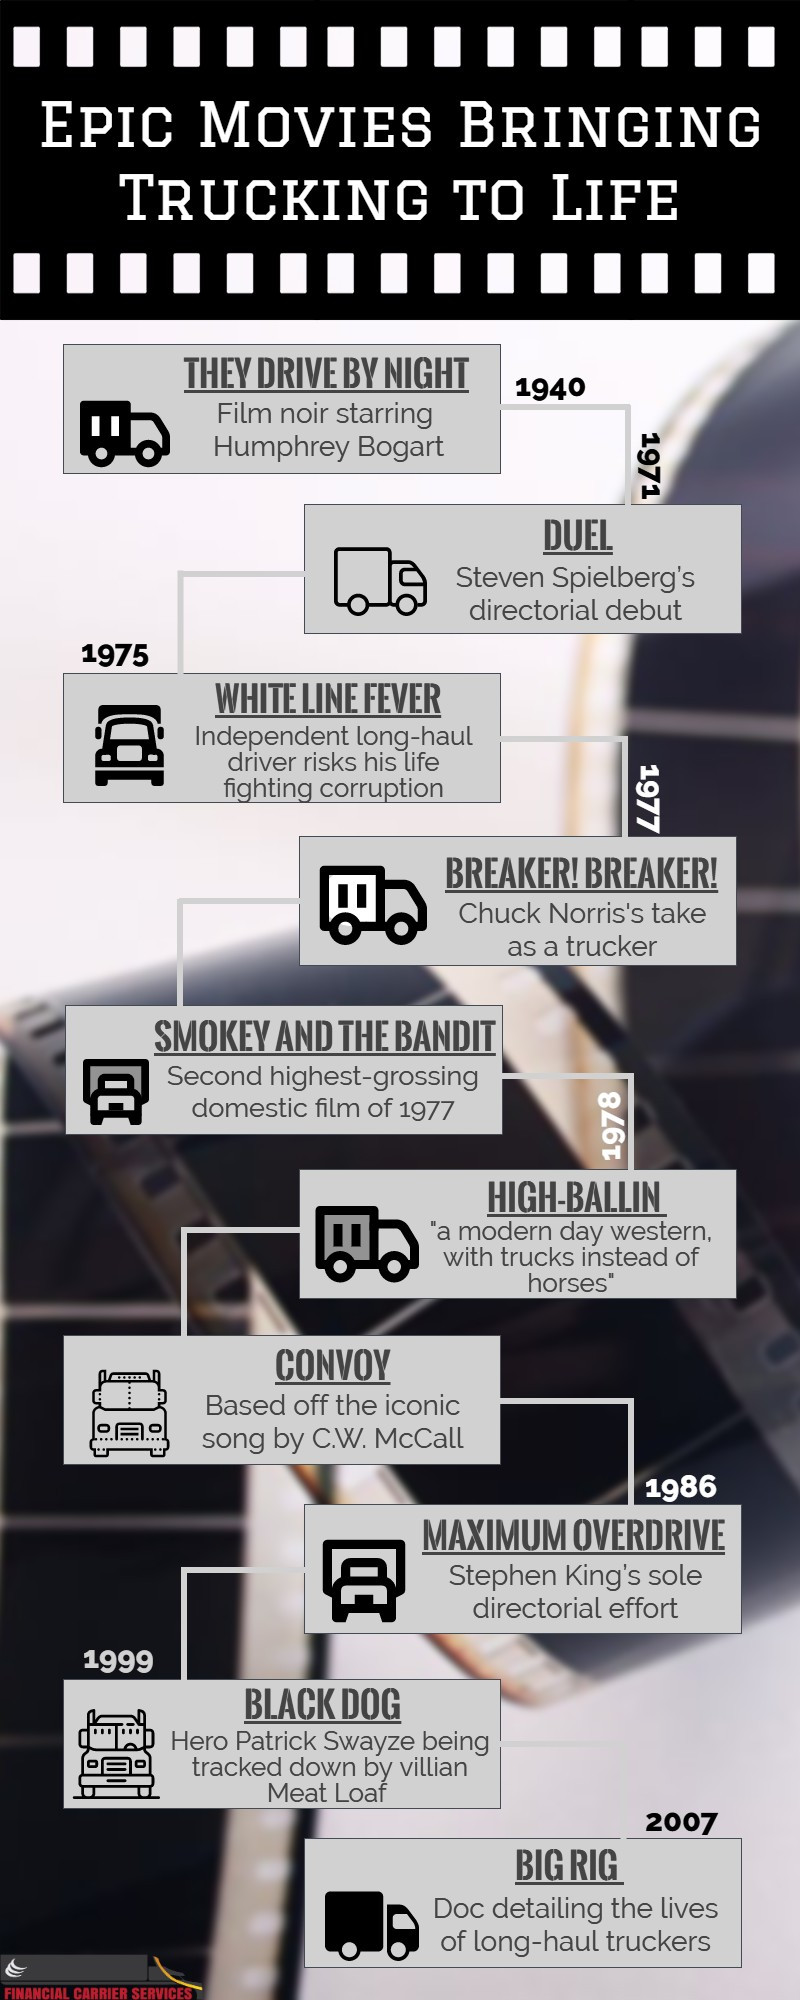 Trucking Movies Timeline Infographic